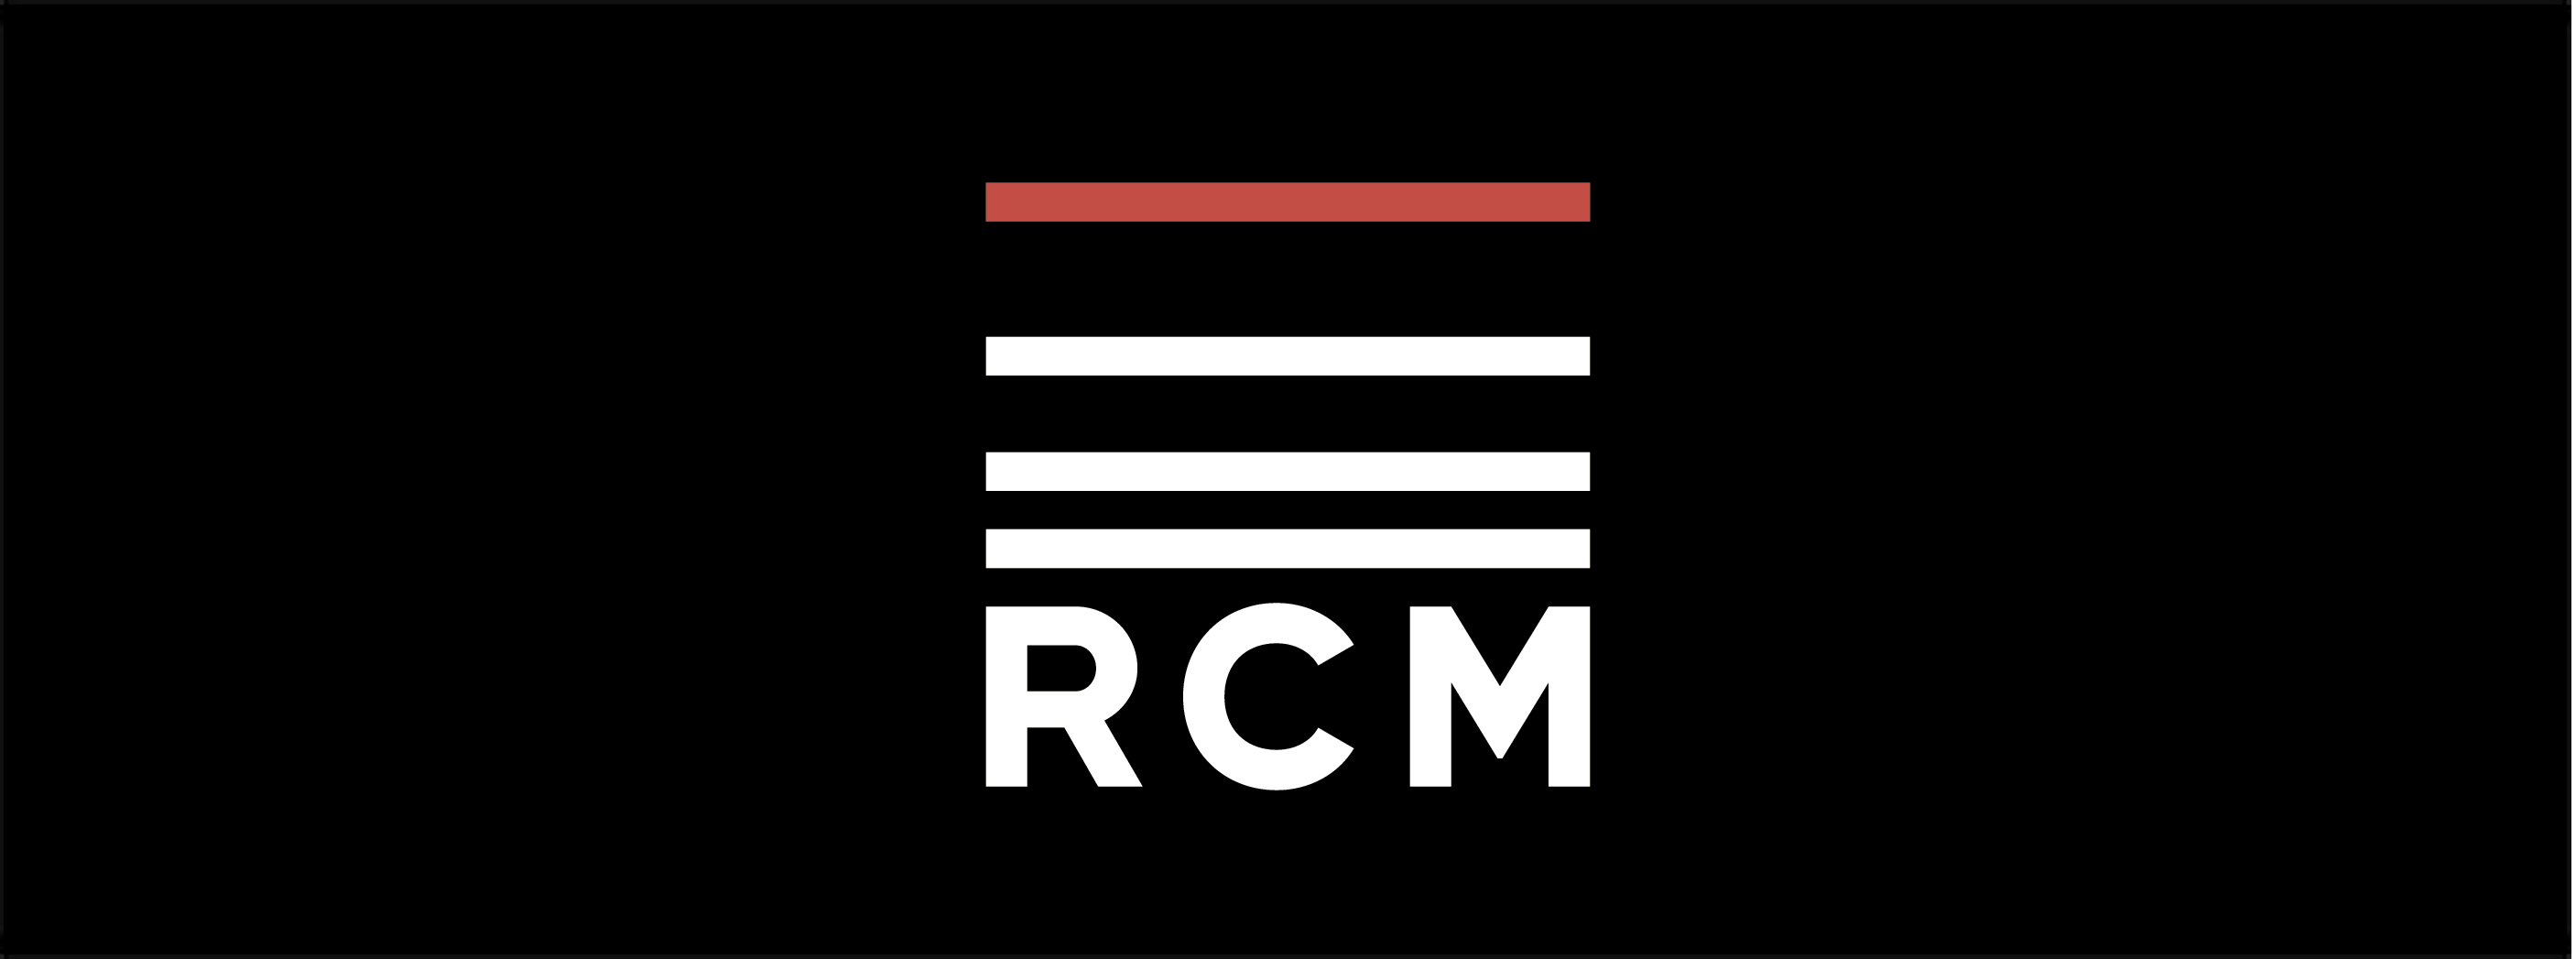 rcm_logo-colour_black_bddg